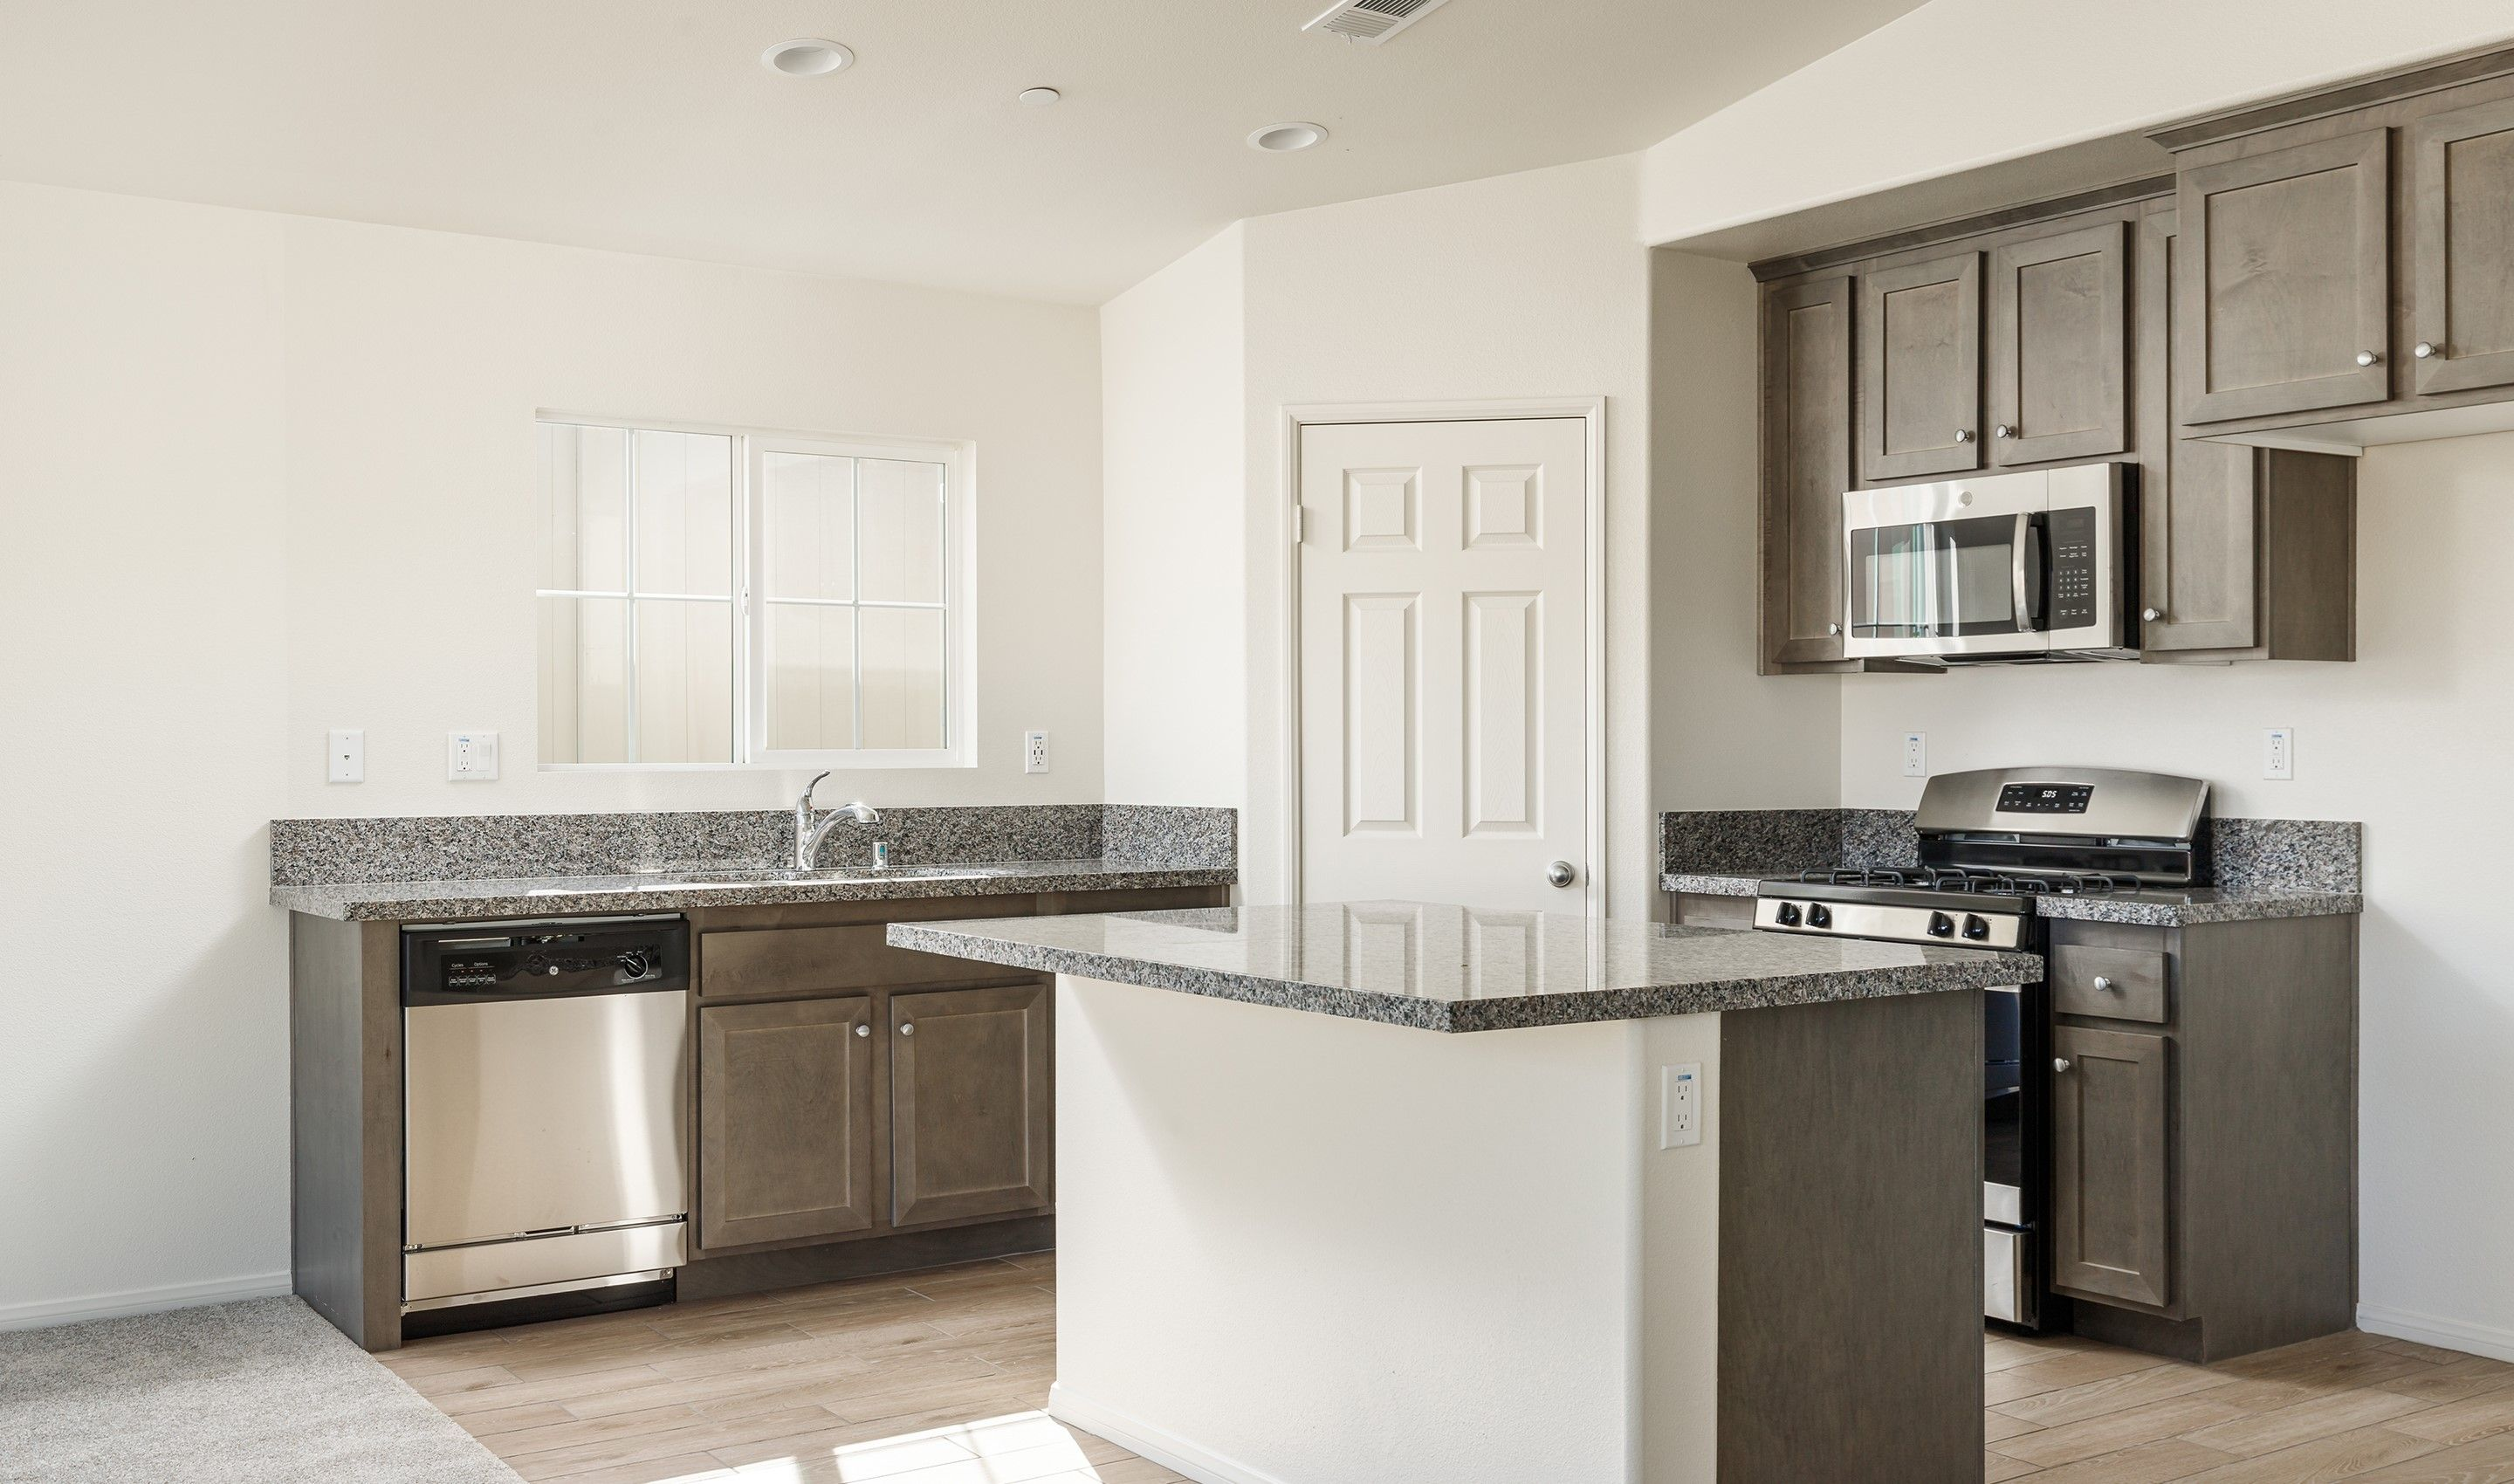 Kitchen featured in the Equinox By K. Hovnanian® Homes in Riverside-San Bernardino, CA